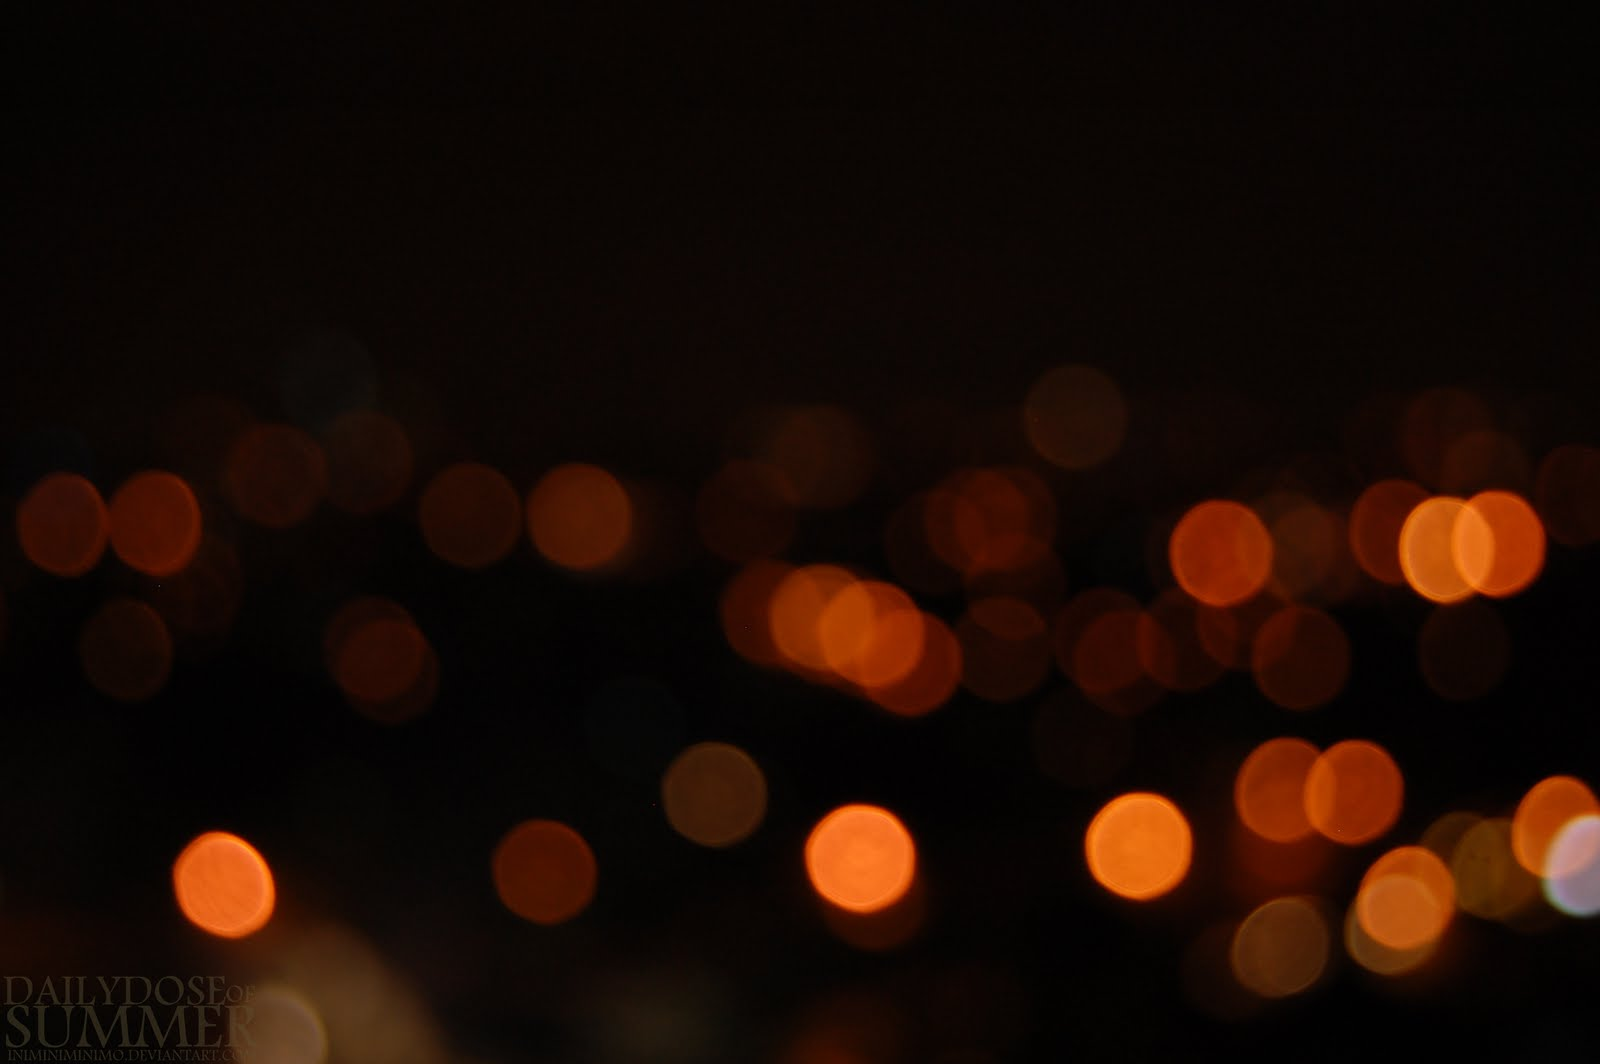 bokeh city lights photo - photo #21